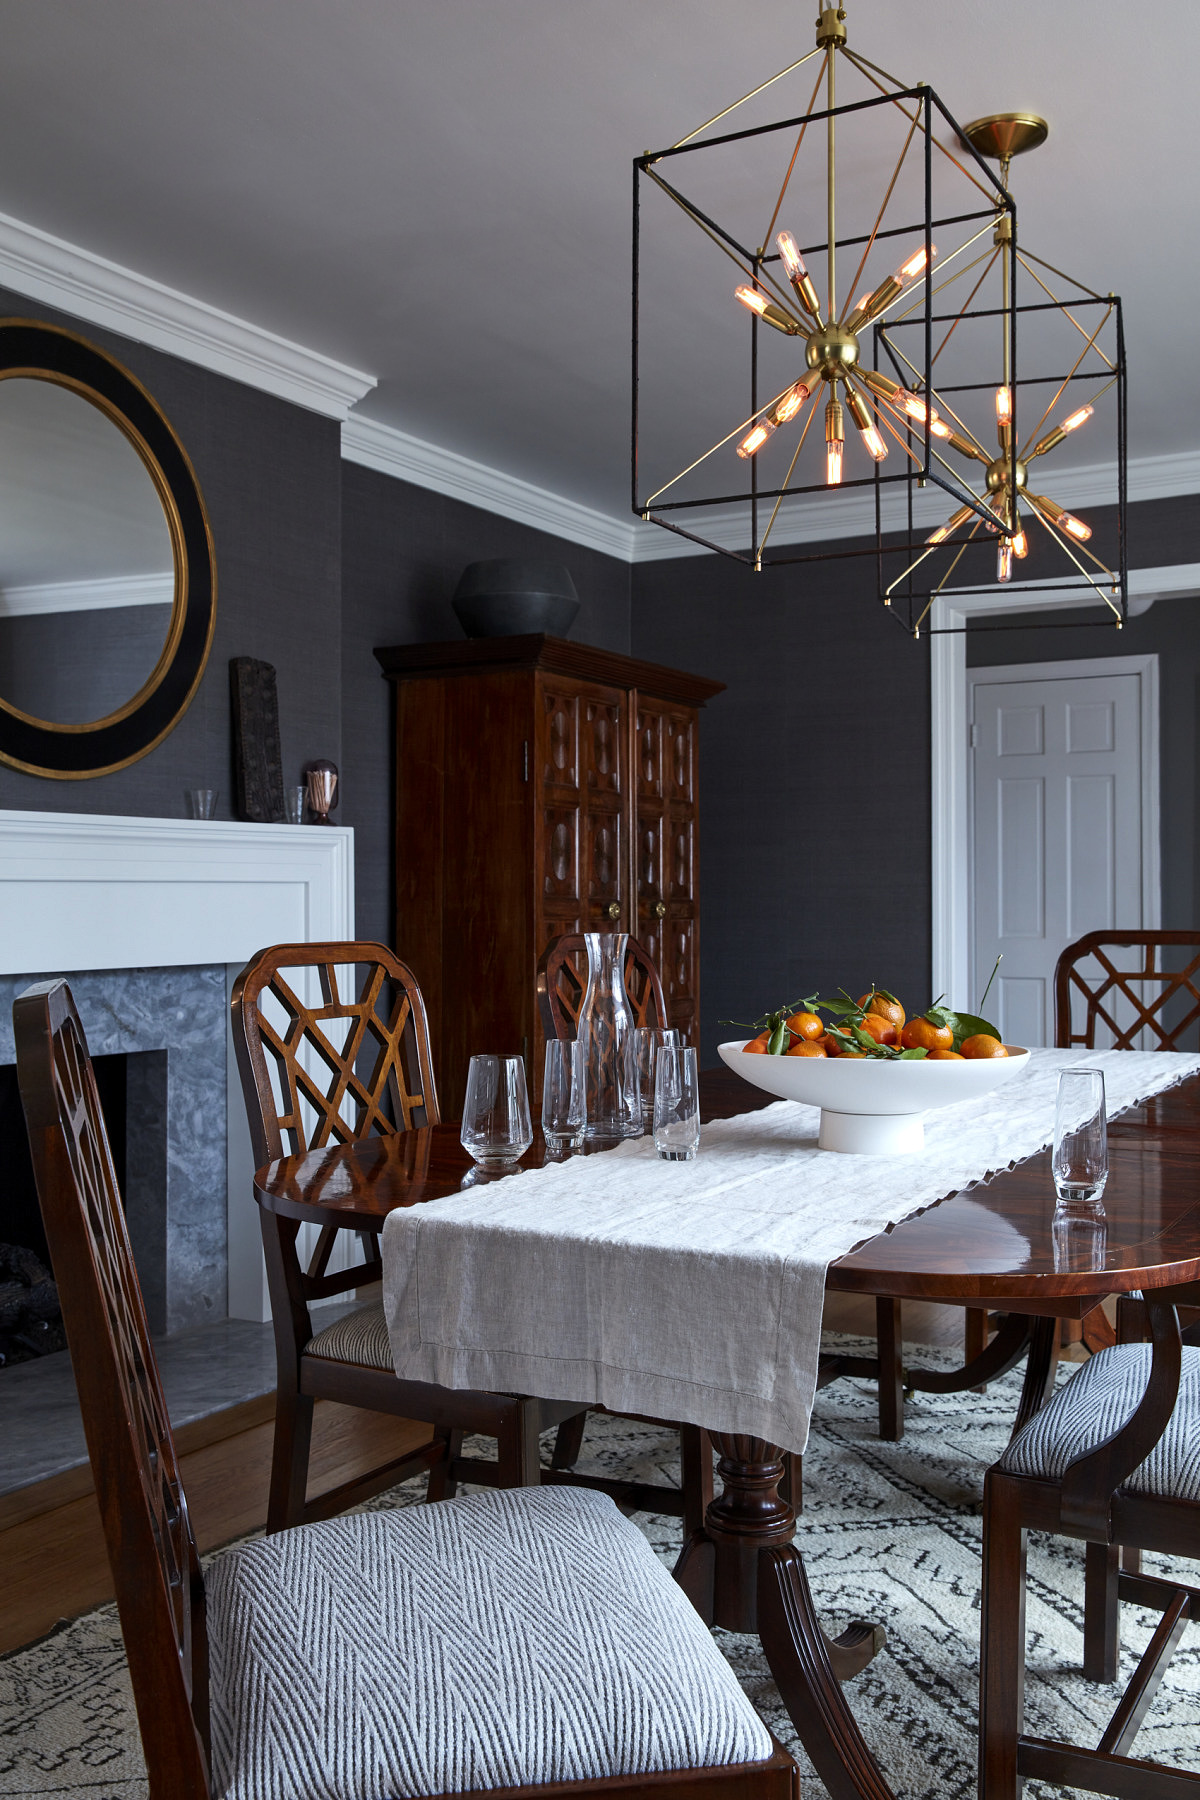 The dining room with newly recovered chairs and heirloom chest